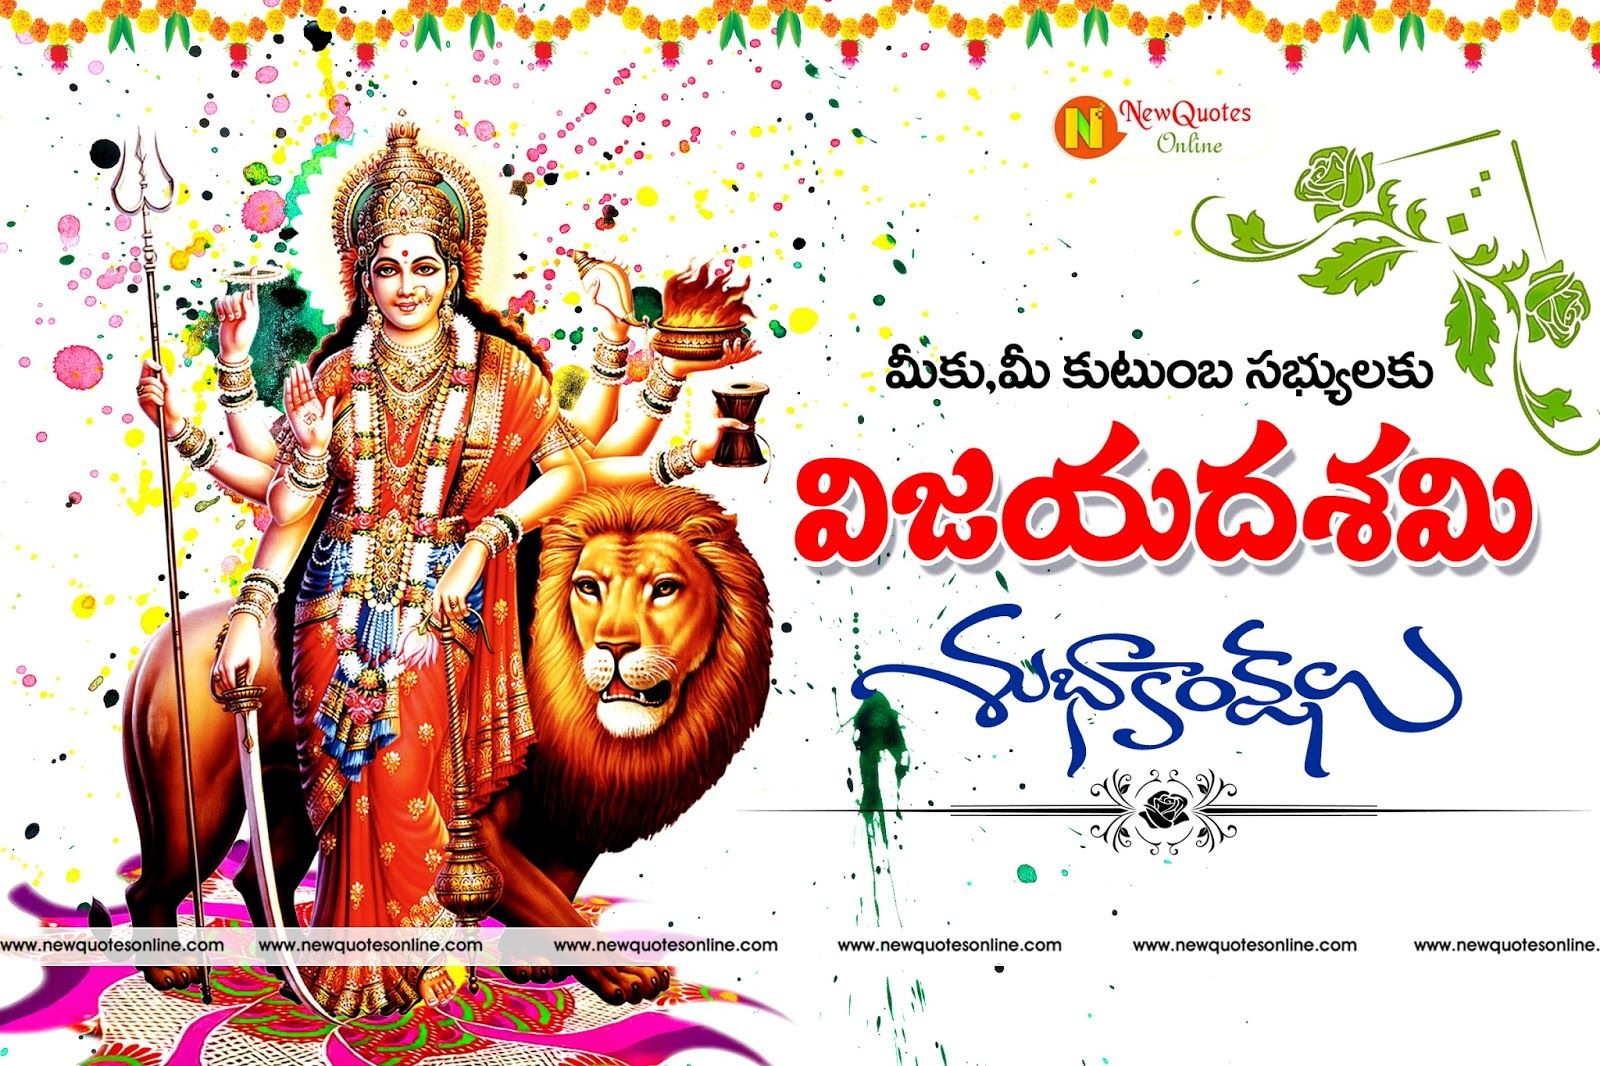 Navaratri images wallpapers quotes greetings durga devi quotation in navaratri images wallpapers quotes greetings durga devi quotation in telugu m4hsunfo